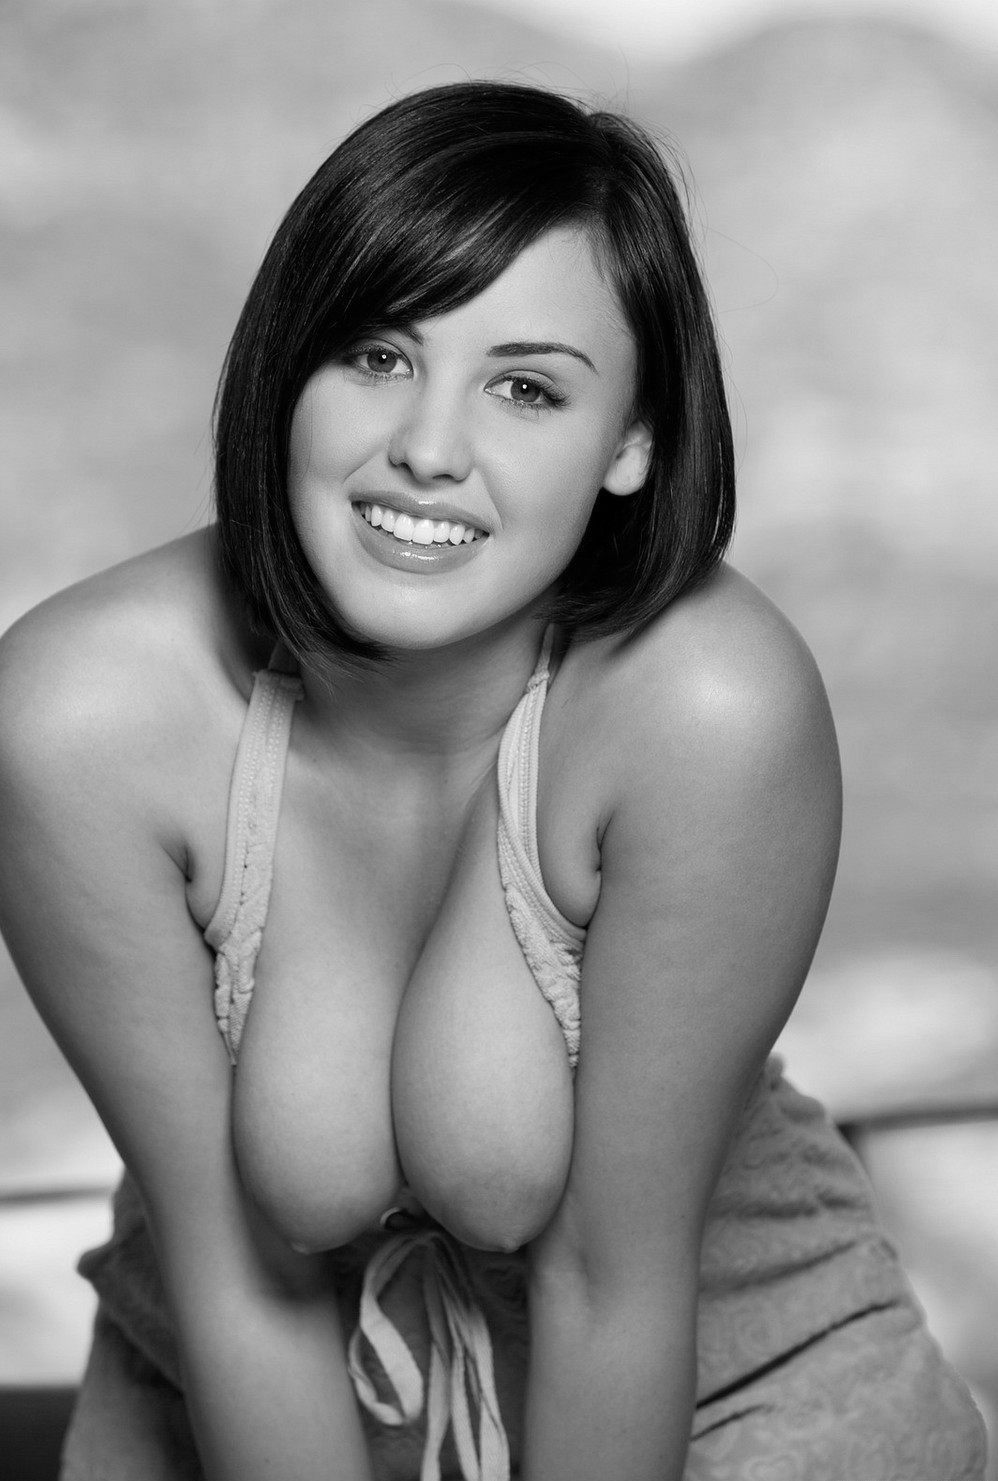 ms lady miss lady pussy showing images for miss lady pussy #brunette#titsout#BlackAndWhite#smile#eyecontact#nipples#boobs#breasts#tits#sexy#beauty#attractive#gorgeous#seductive#perfect#Beautiful